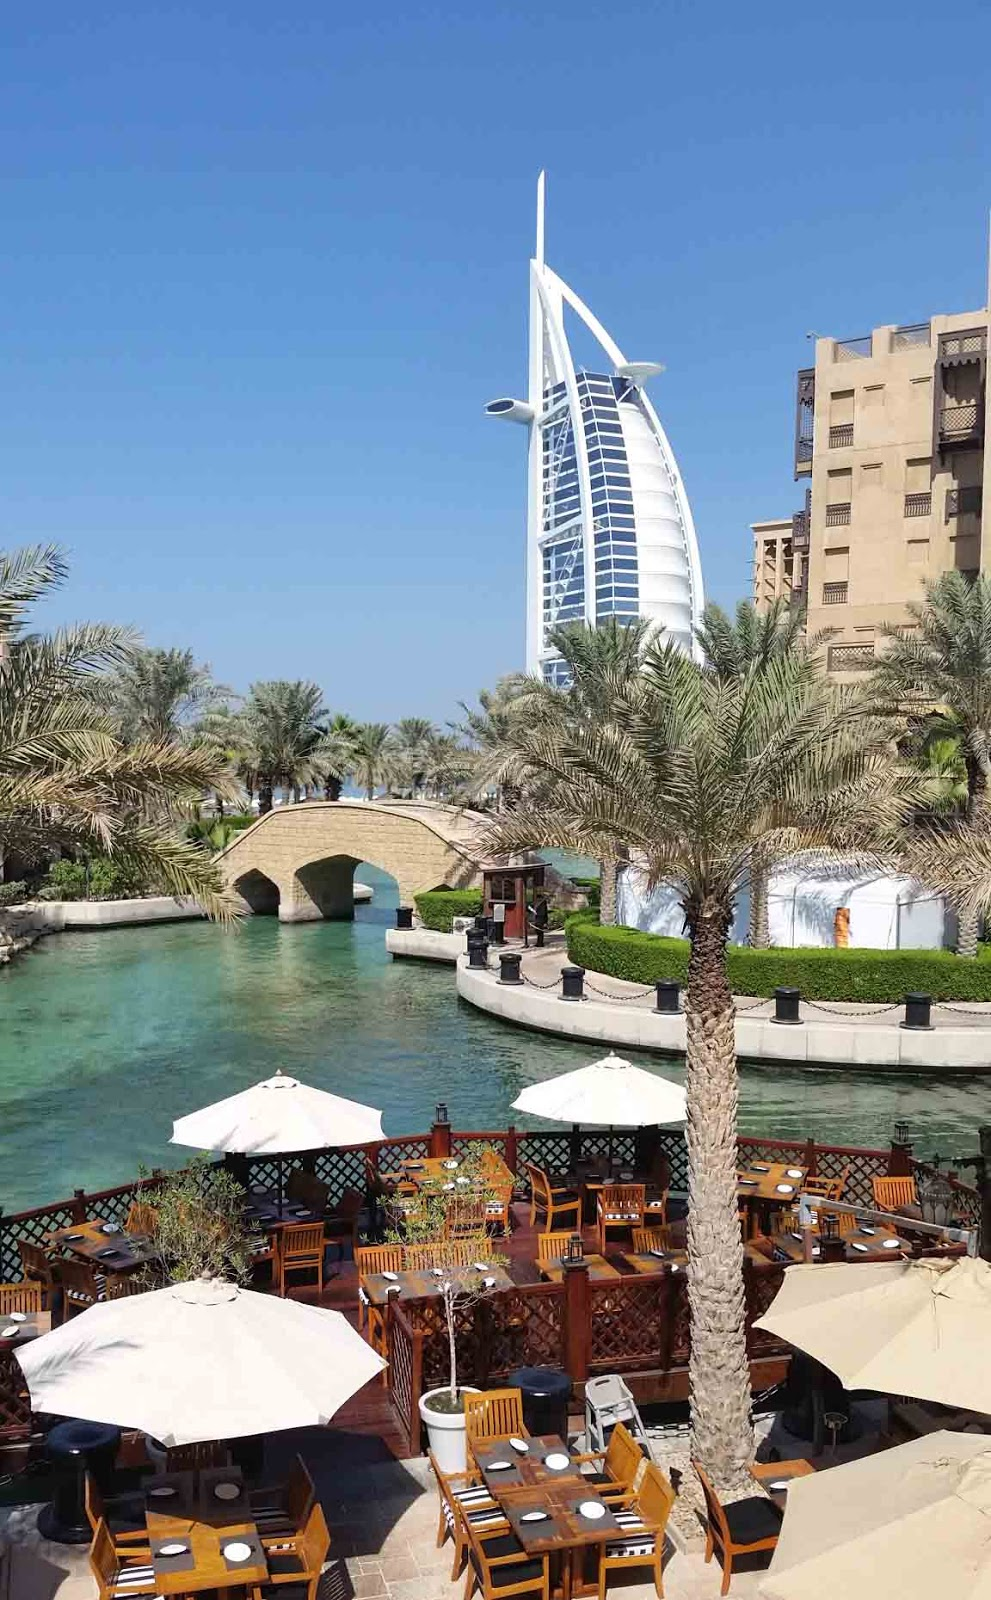 Madinet hotel dubai lets soar with eagles december 2015 for Top hotels in dubai 2015